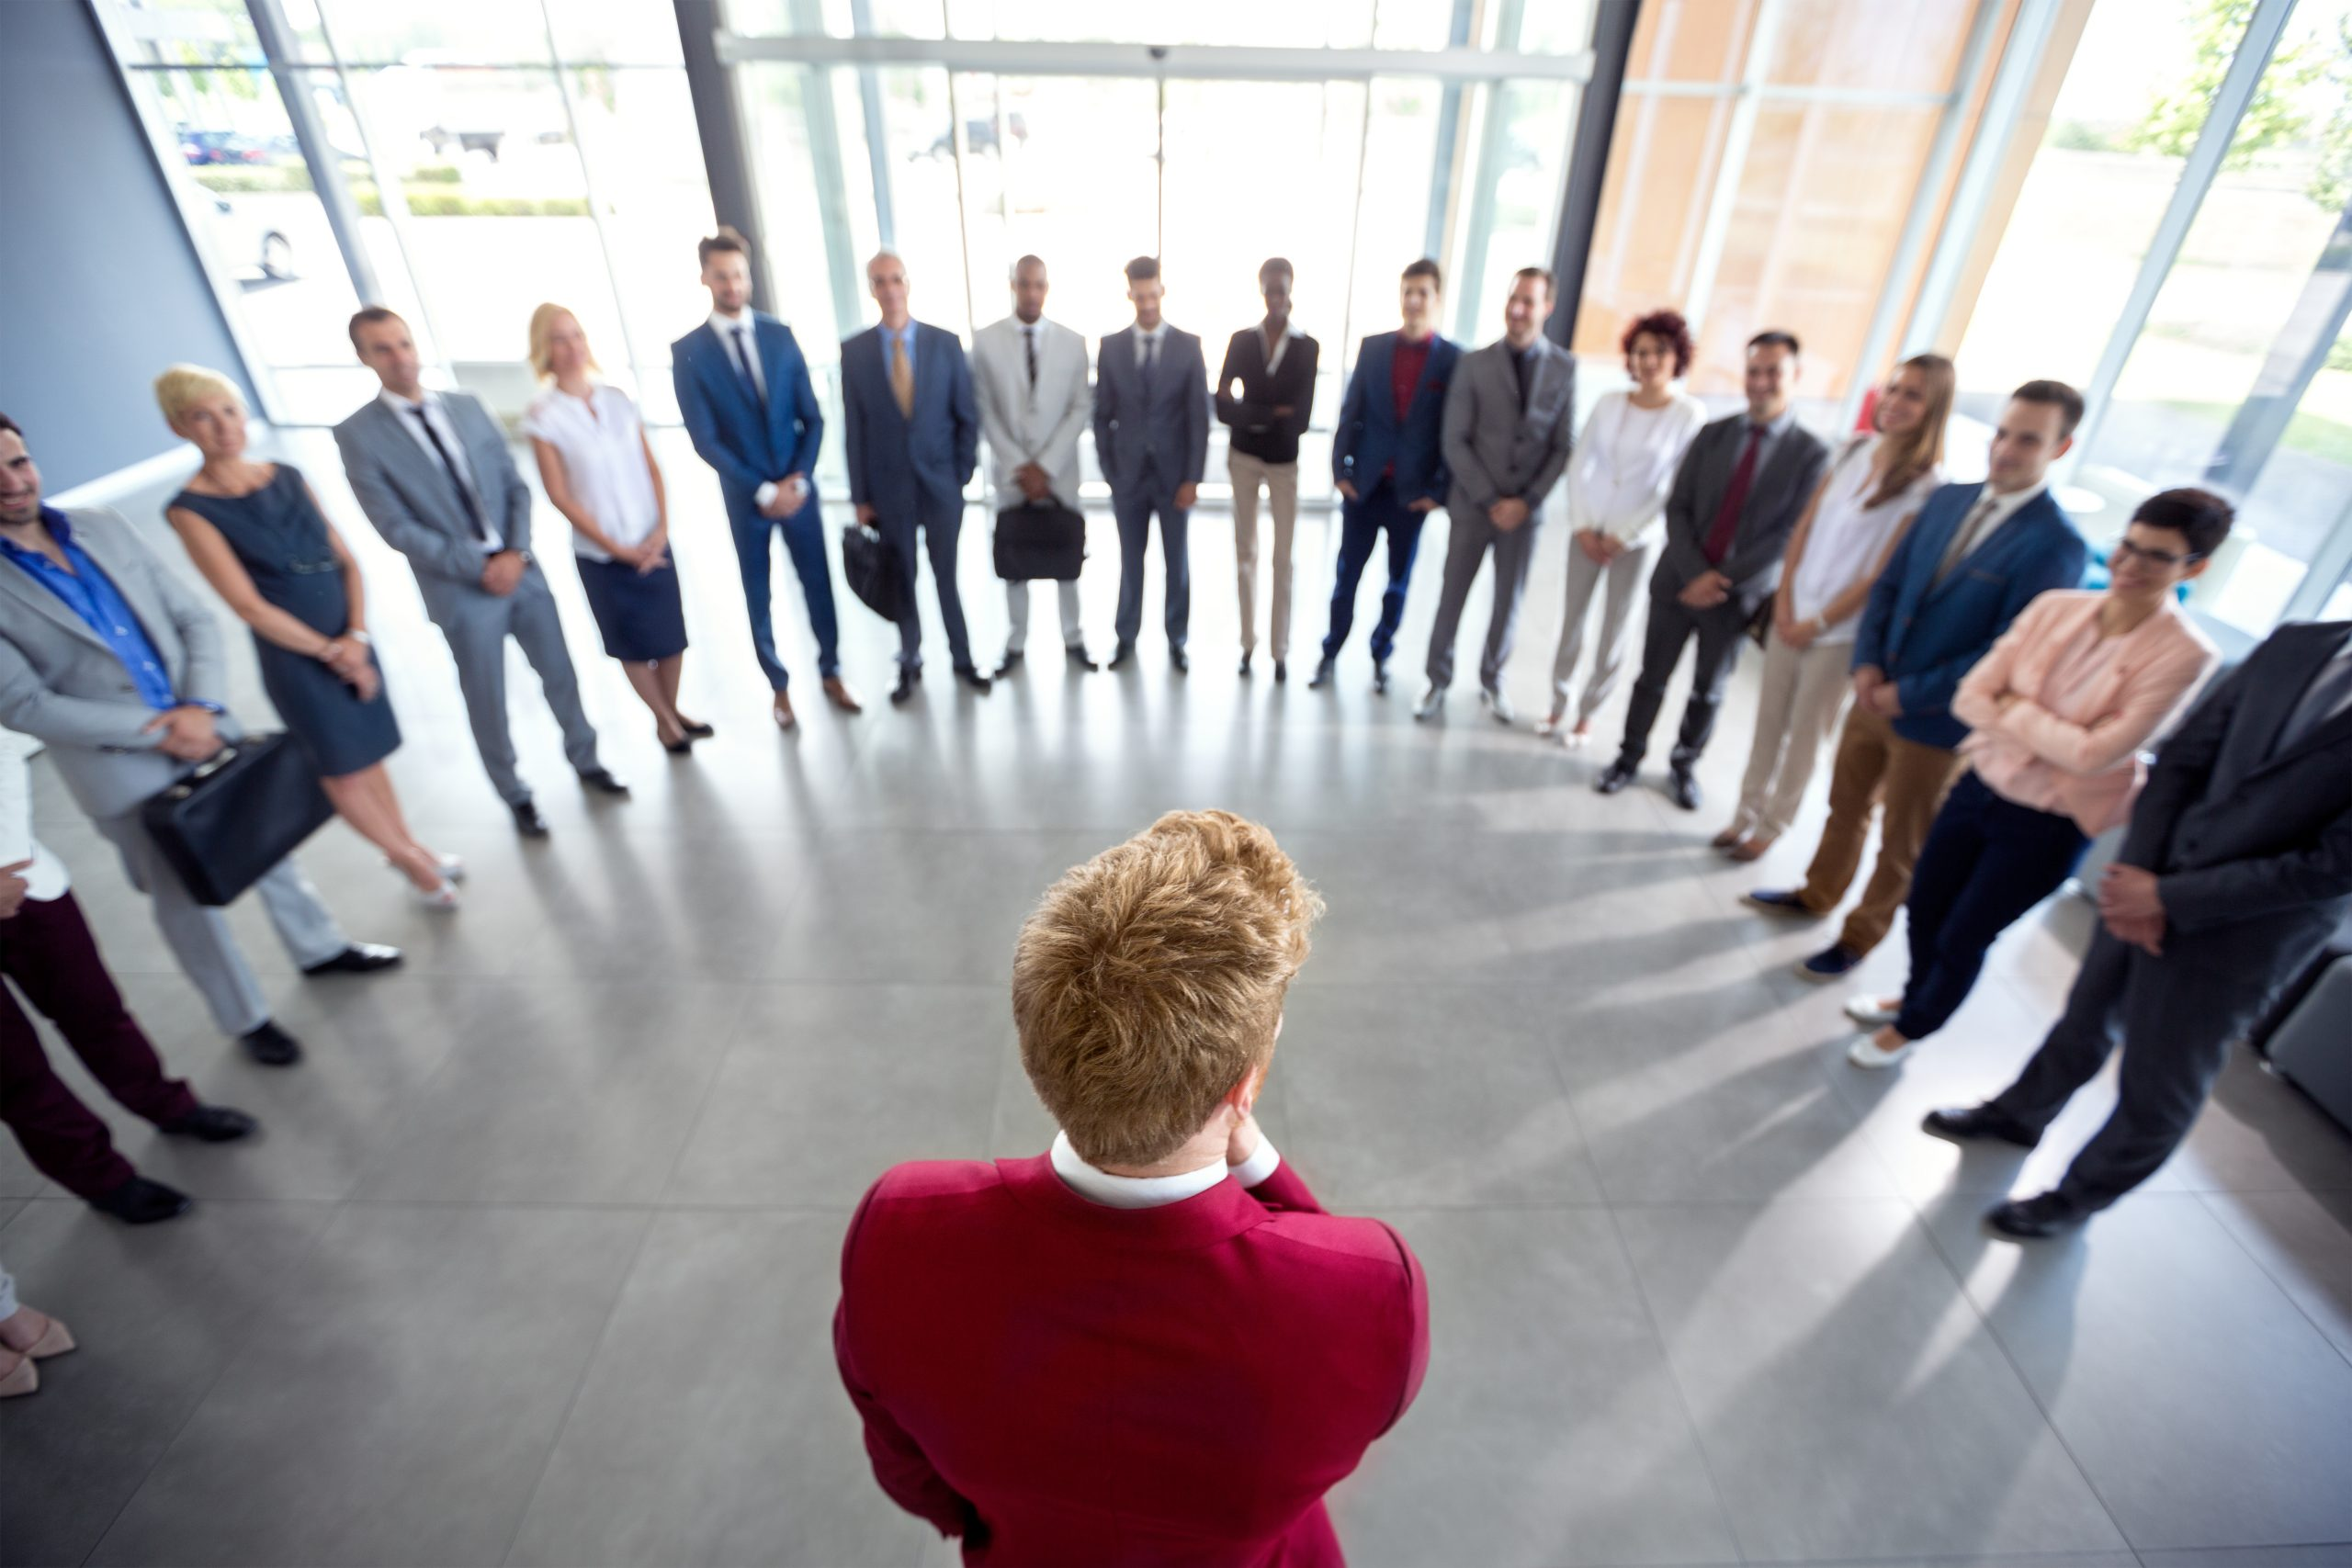 Leader encourage his team and congratulate them on success